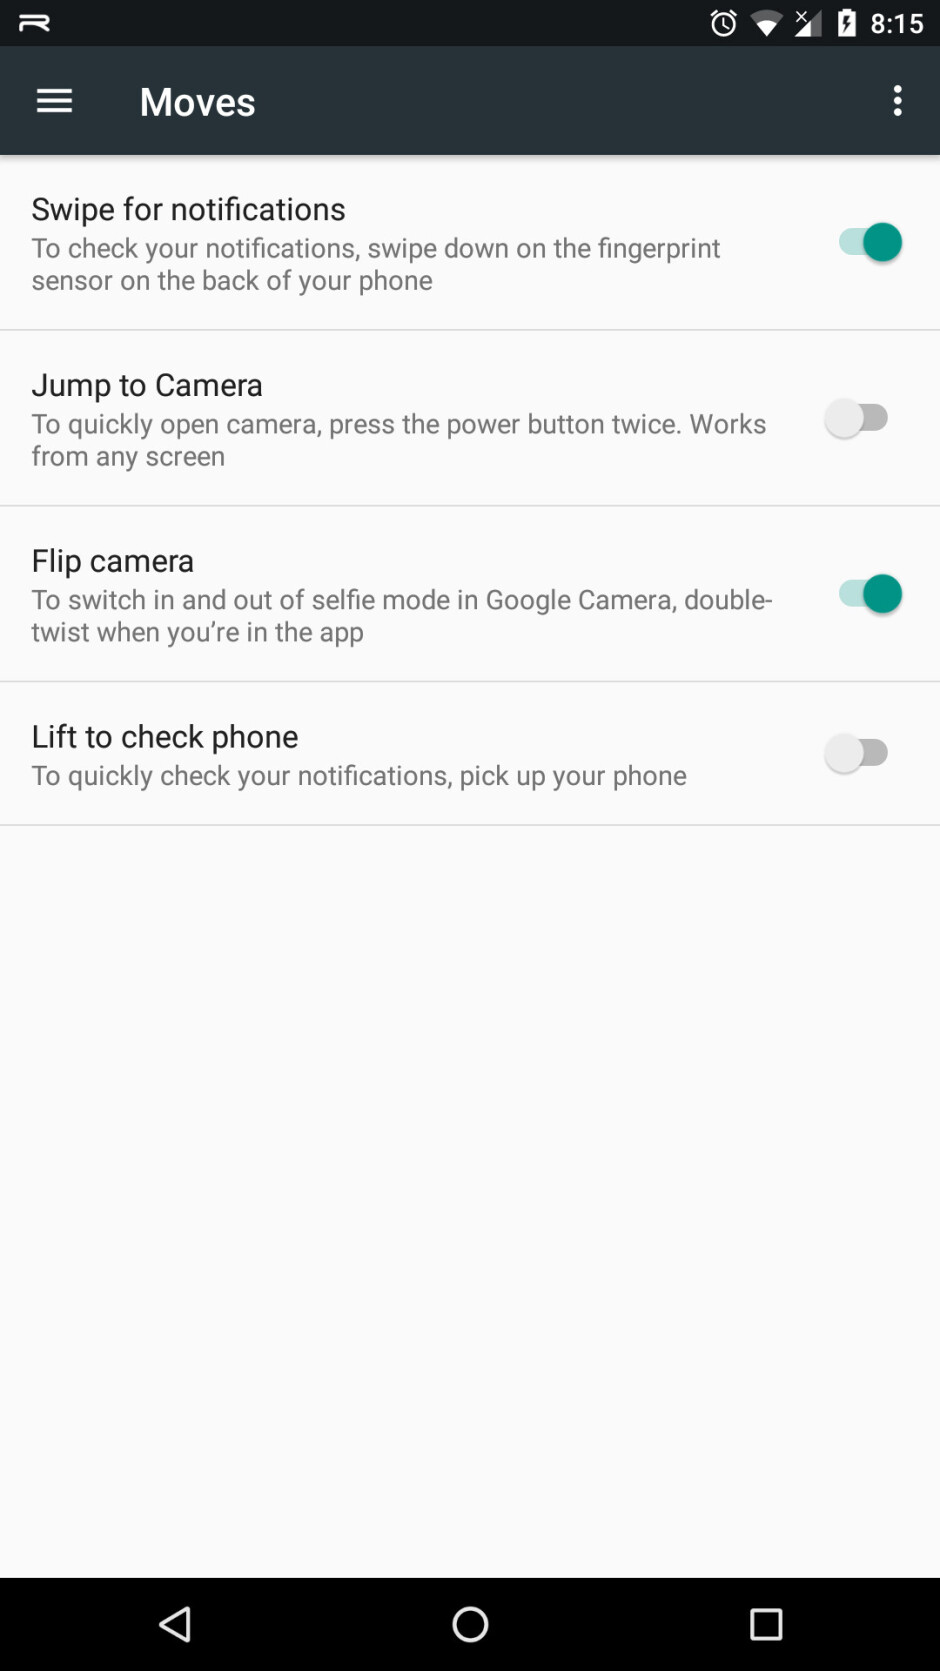 Image courtesy of Reddit user spannerphantom - Android 7.1.2 brings fingerprint gestures over to the Nexus 5X, Nexus 6P likely to follow